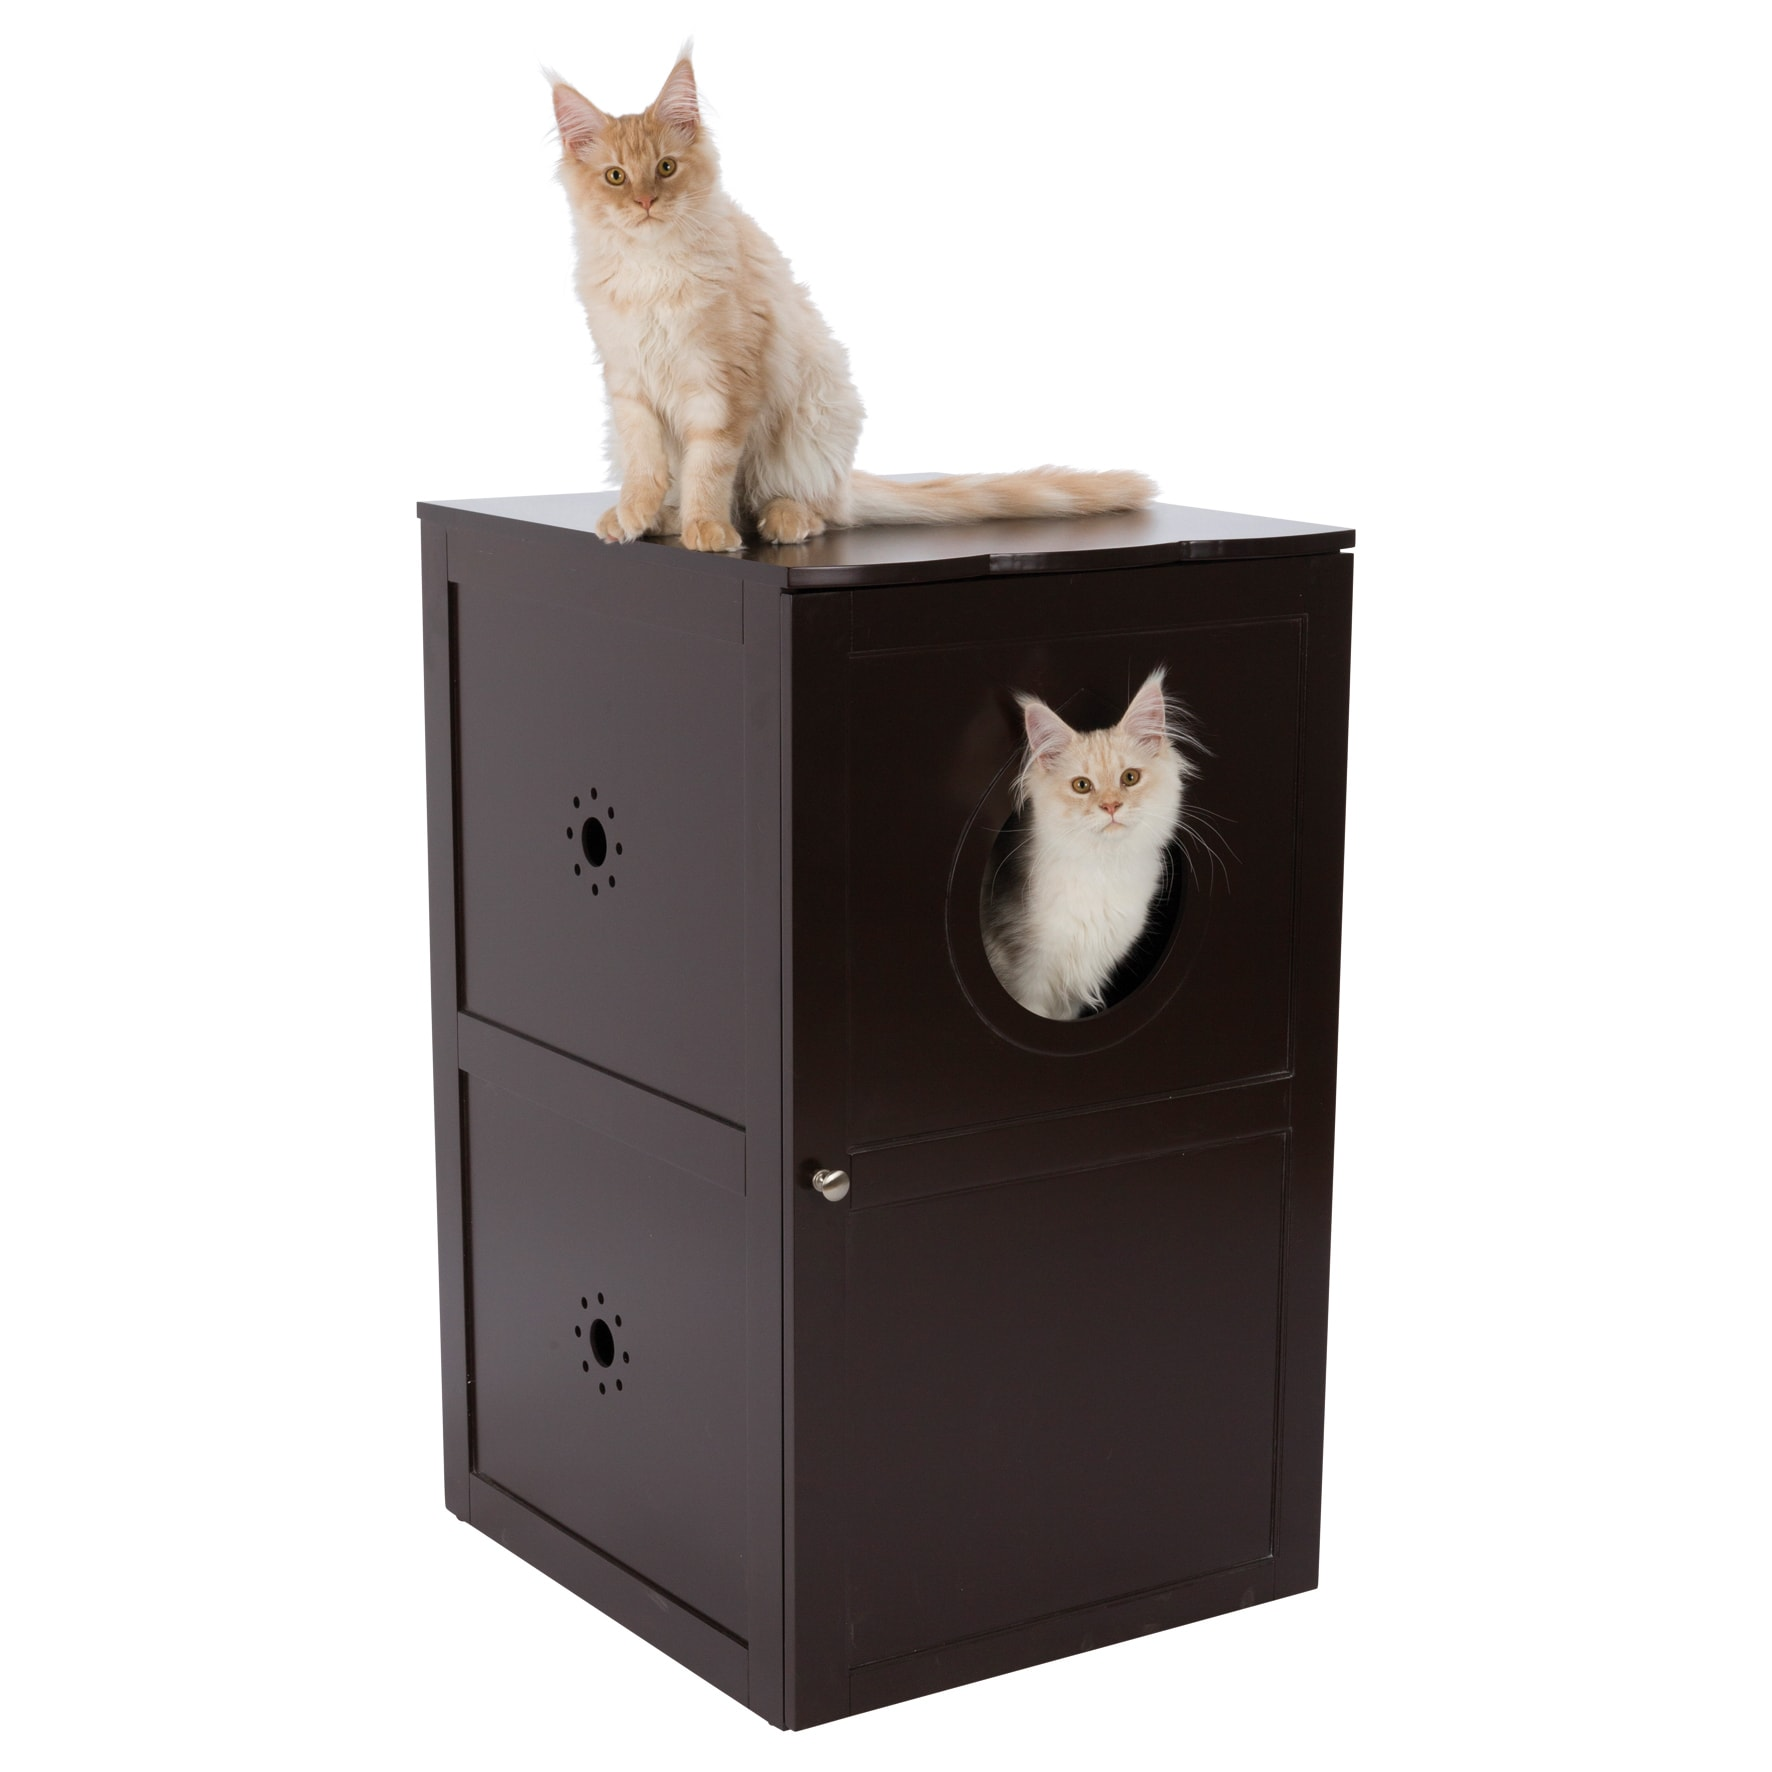 Brown Wooden 2-Story Cat House/ Litter Box - Free Shipping Today -  Overstock.com - 22680285